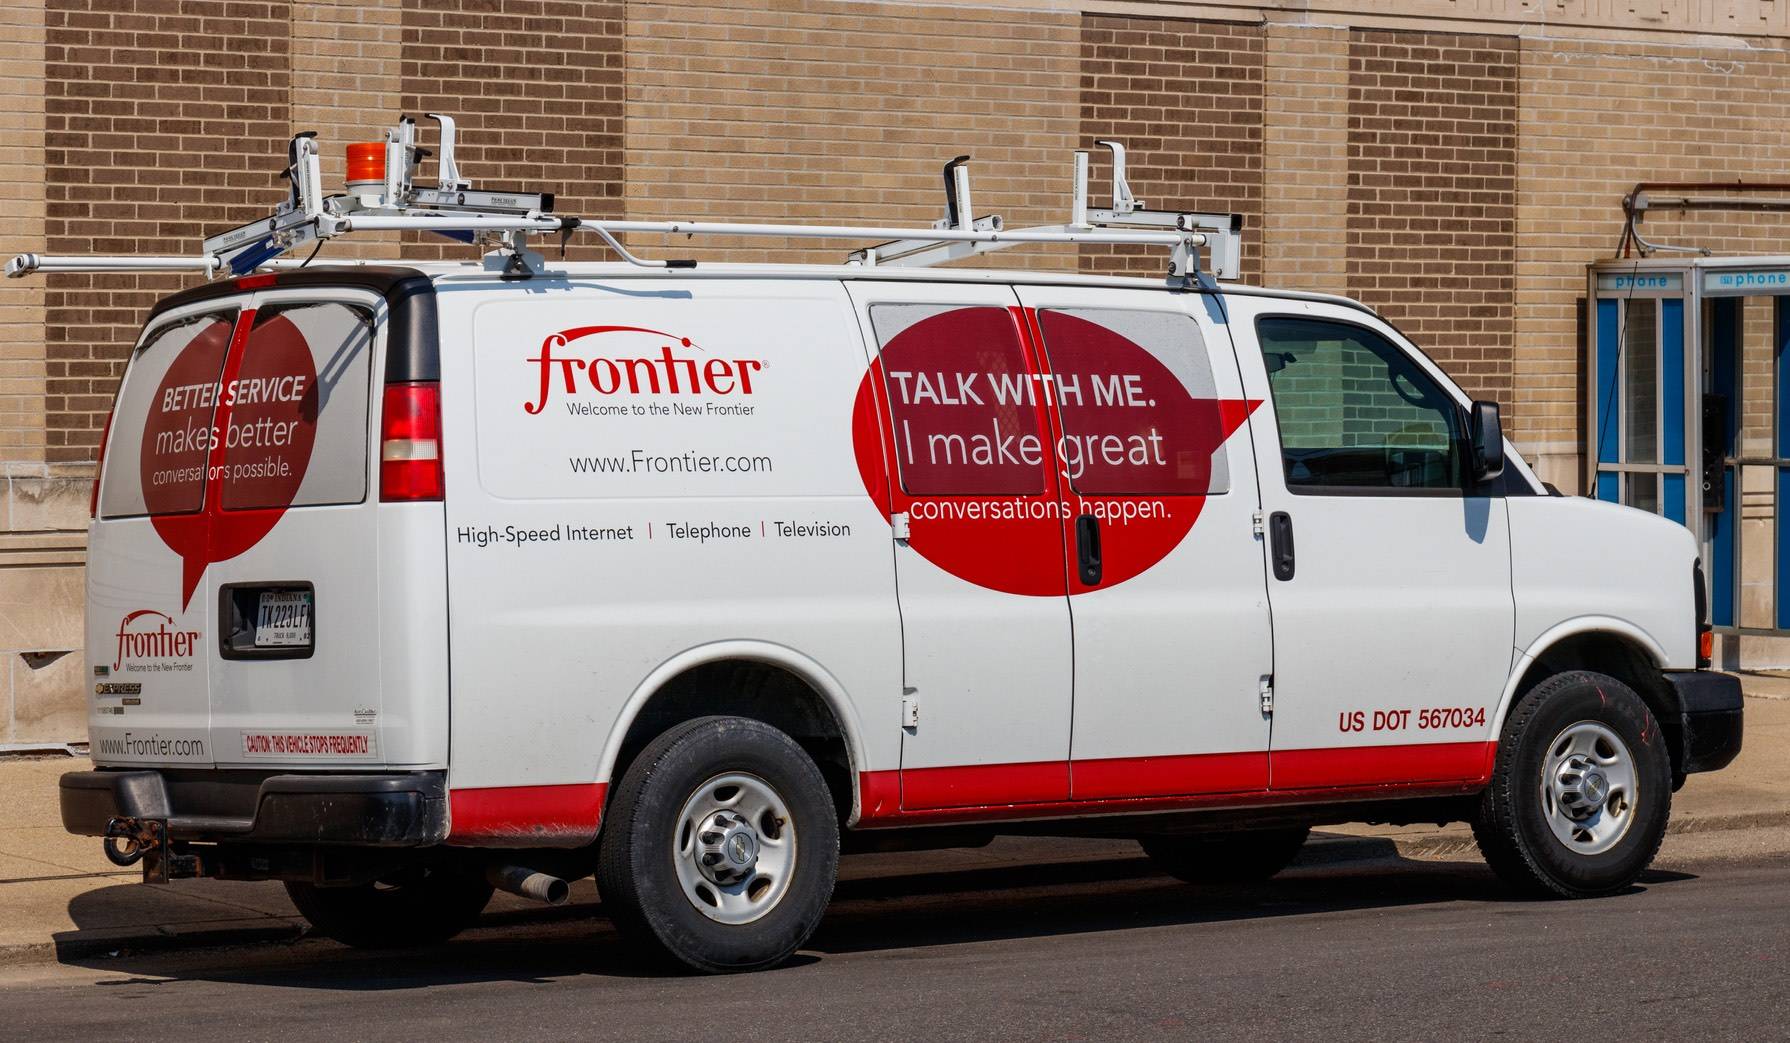 Frontier network outages get worse in NY, triggering state